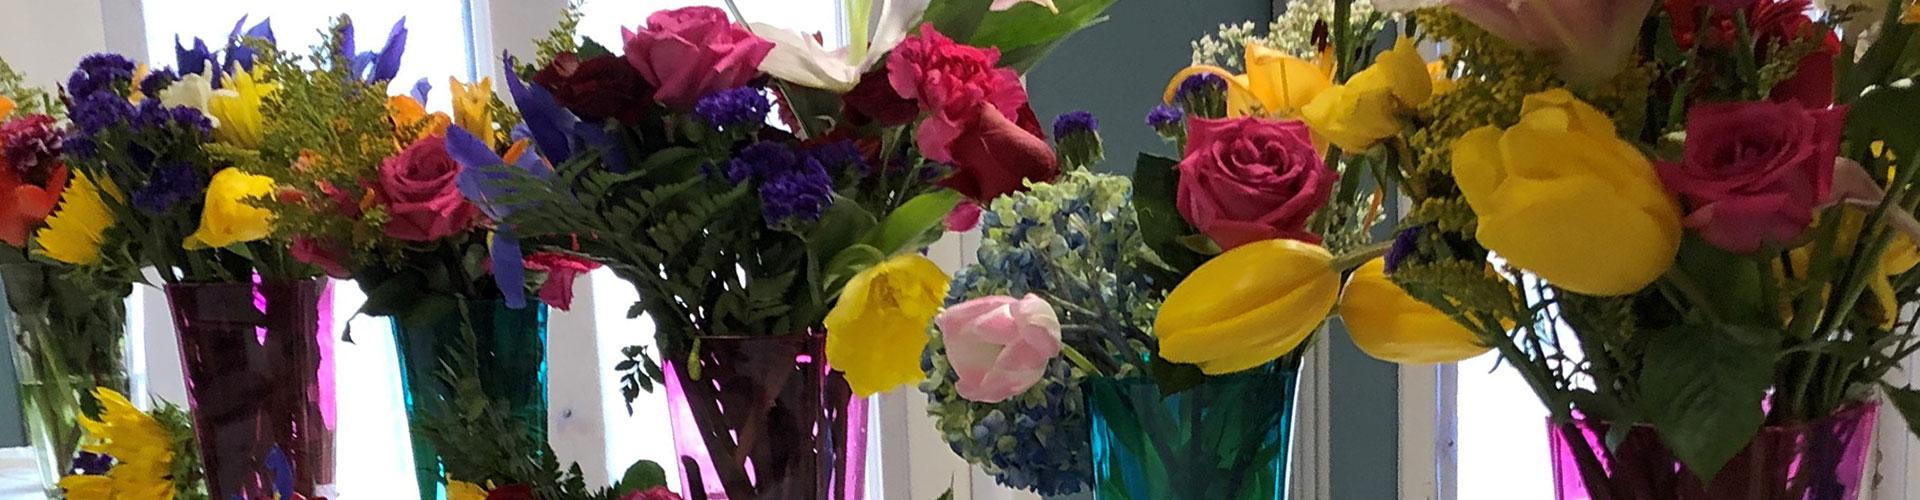 A row of flower arrangements in many colors